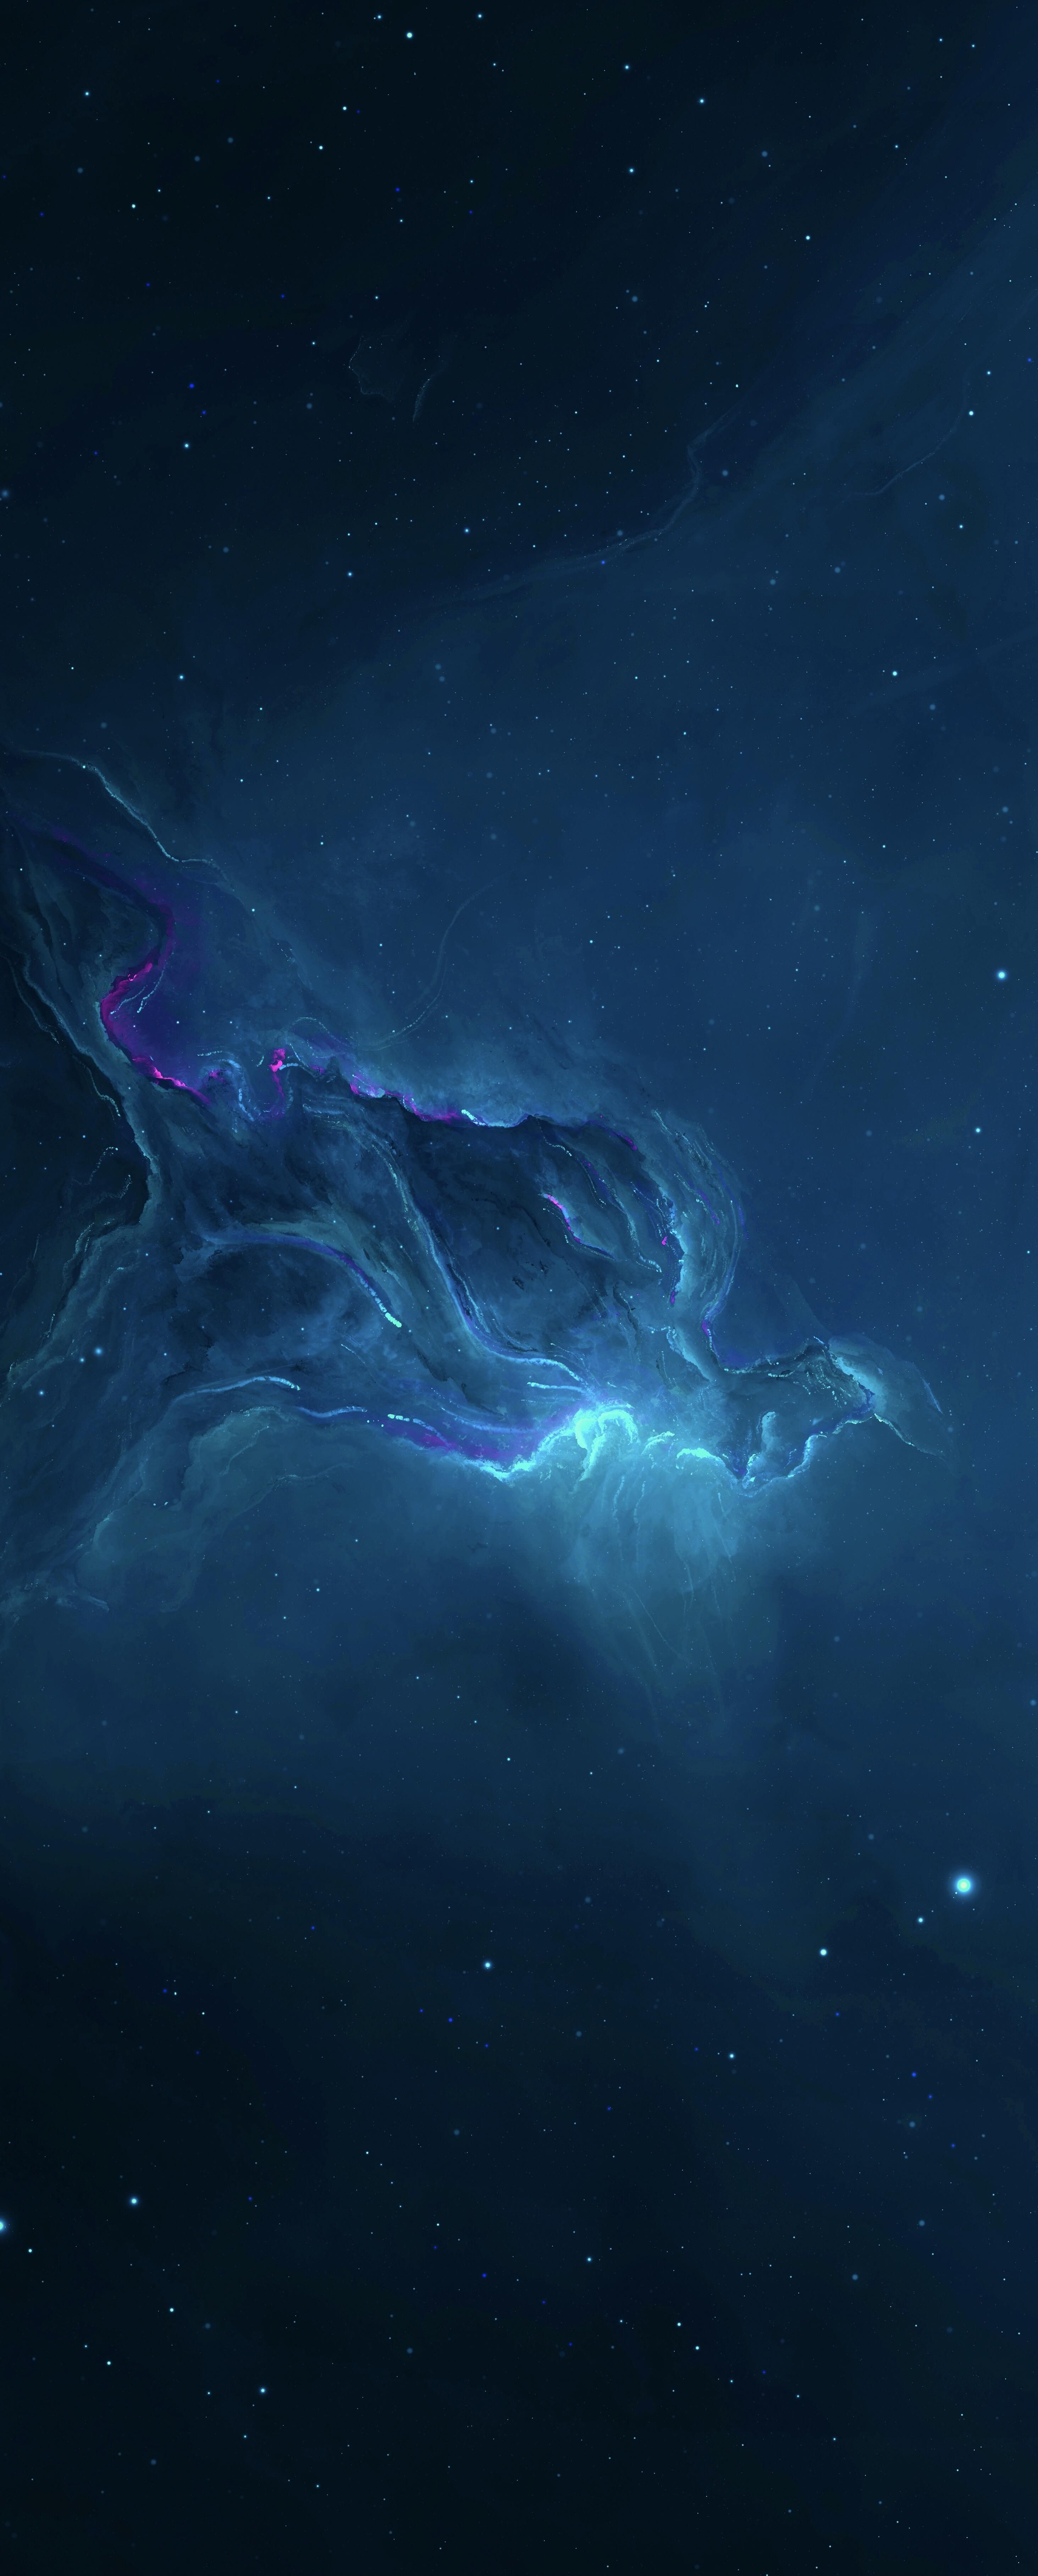 blue space   beautiful wallpaper   pinterest   art, space and blue space